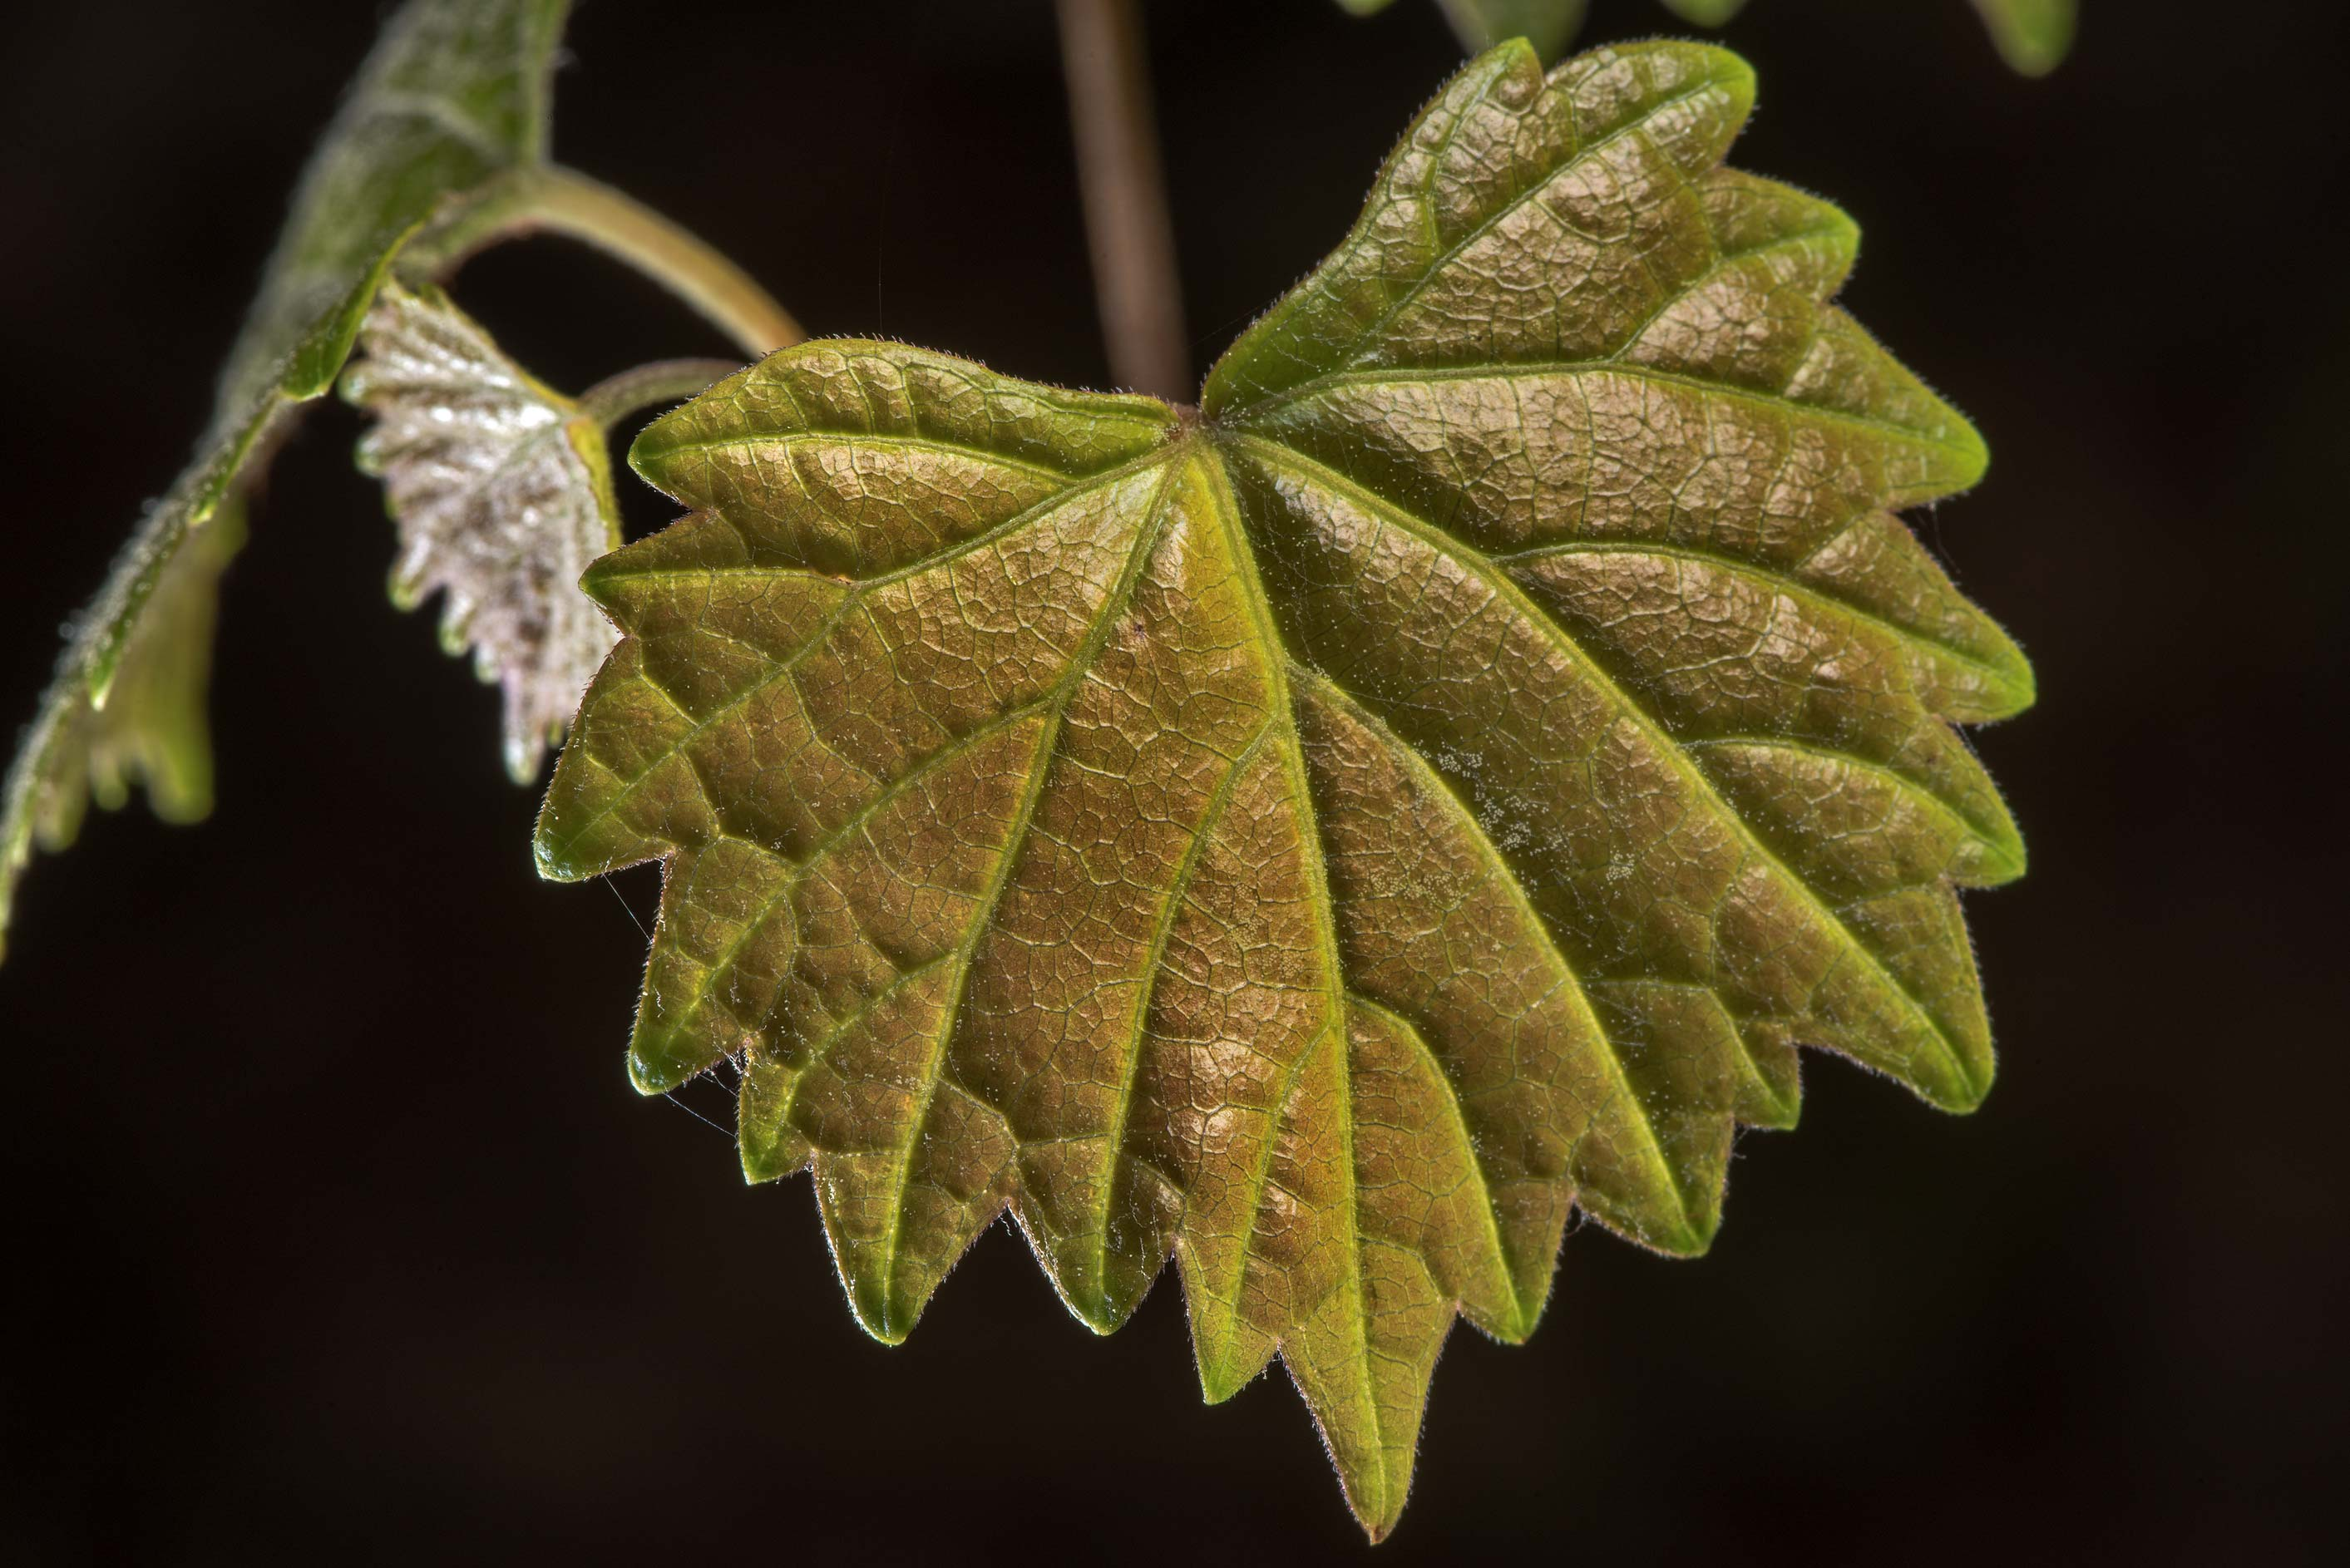 Leaf of Muscadine Grape (Vitis rotundifolia) on...National Forest near Huntsville. Texas